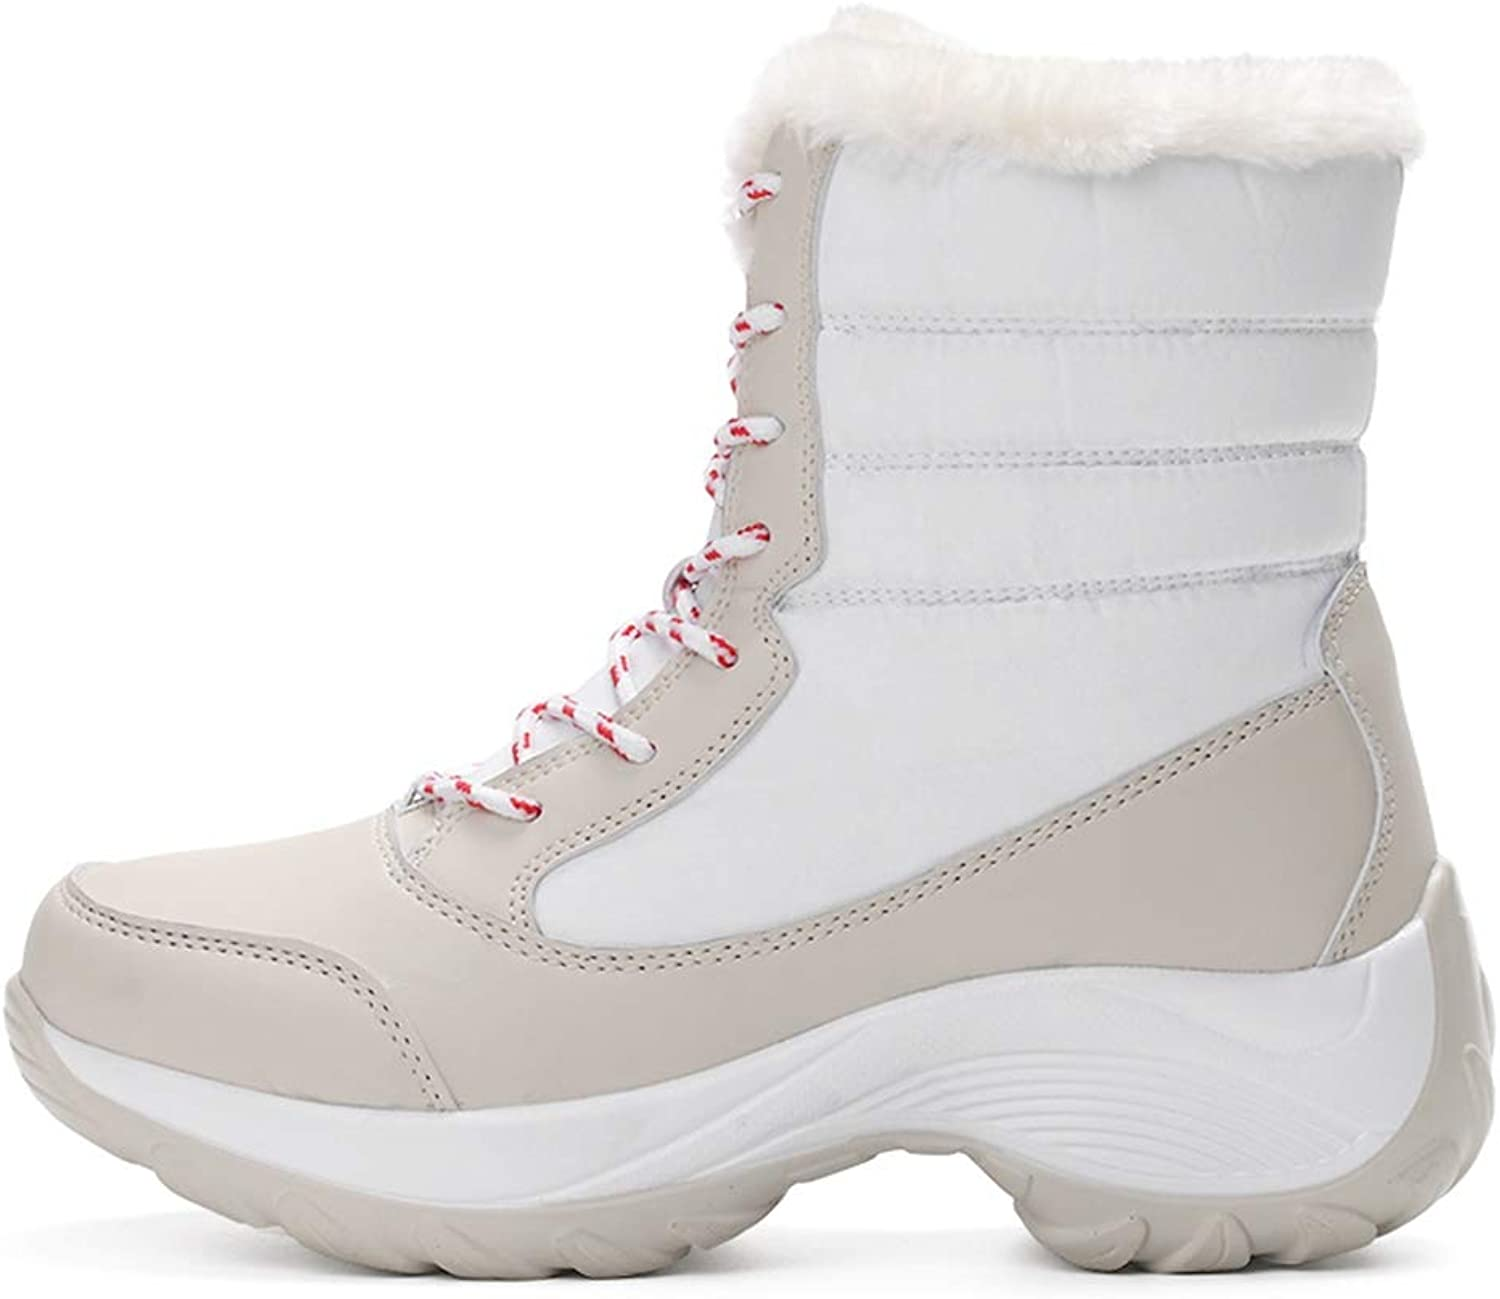 Hoxekle Women Winter Snow Boot Thick Platform Waterproof Warm Female Boots Non-Slip Round Toe Casual Outdoor Ankle Boots